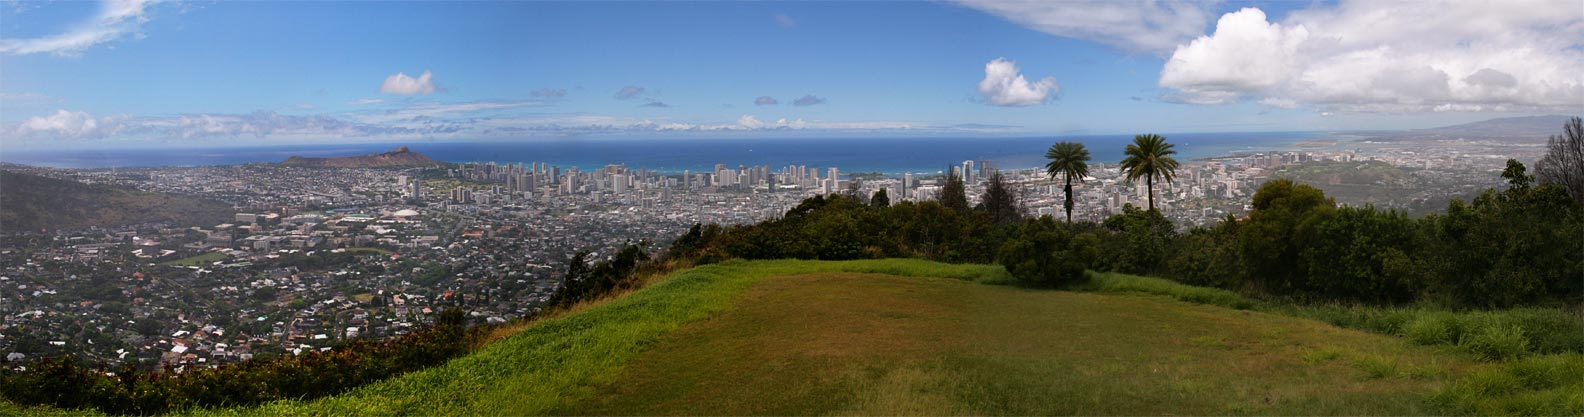 Honolulu, Oahu - Hawaii